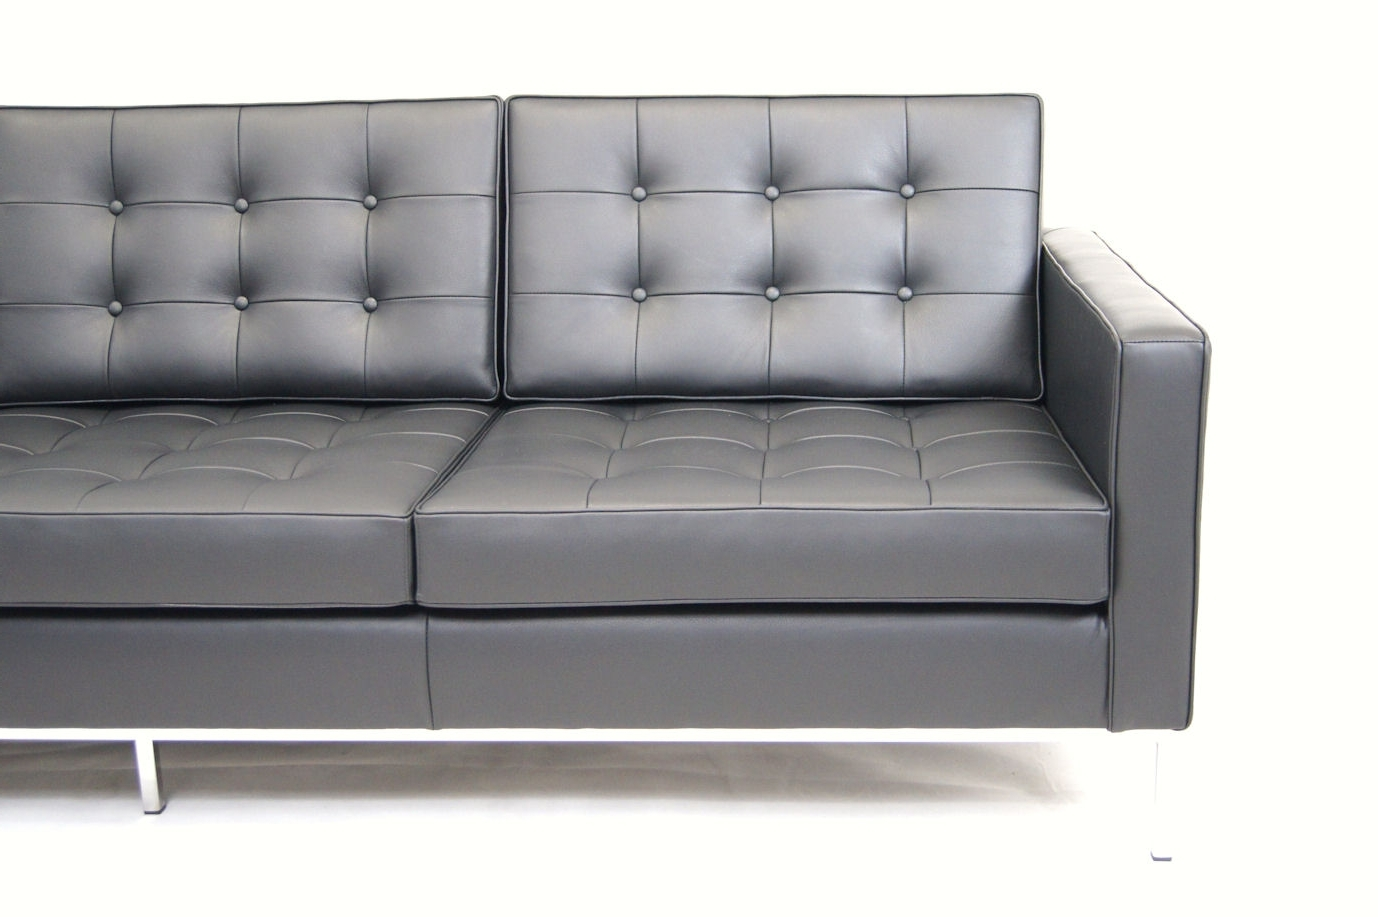 Newest Florence Knoll Leather Sofas Regarding Florence Knoll Sofa Canada « House Plans Ideas (View 5 of 15)